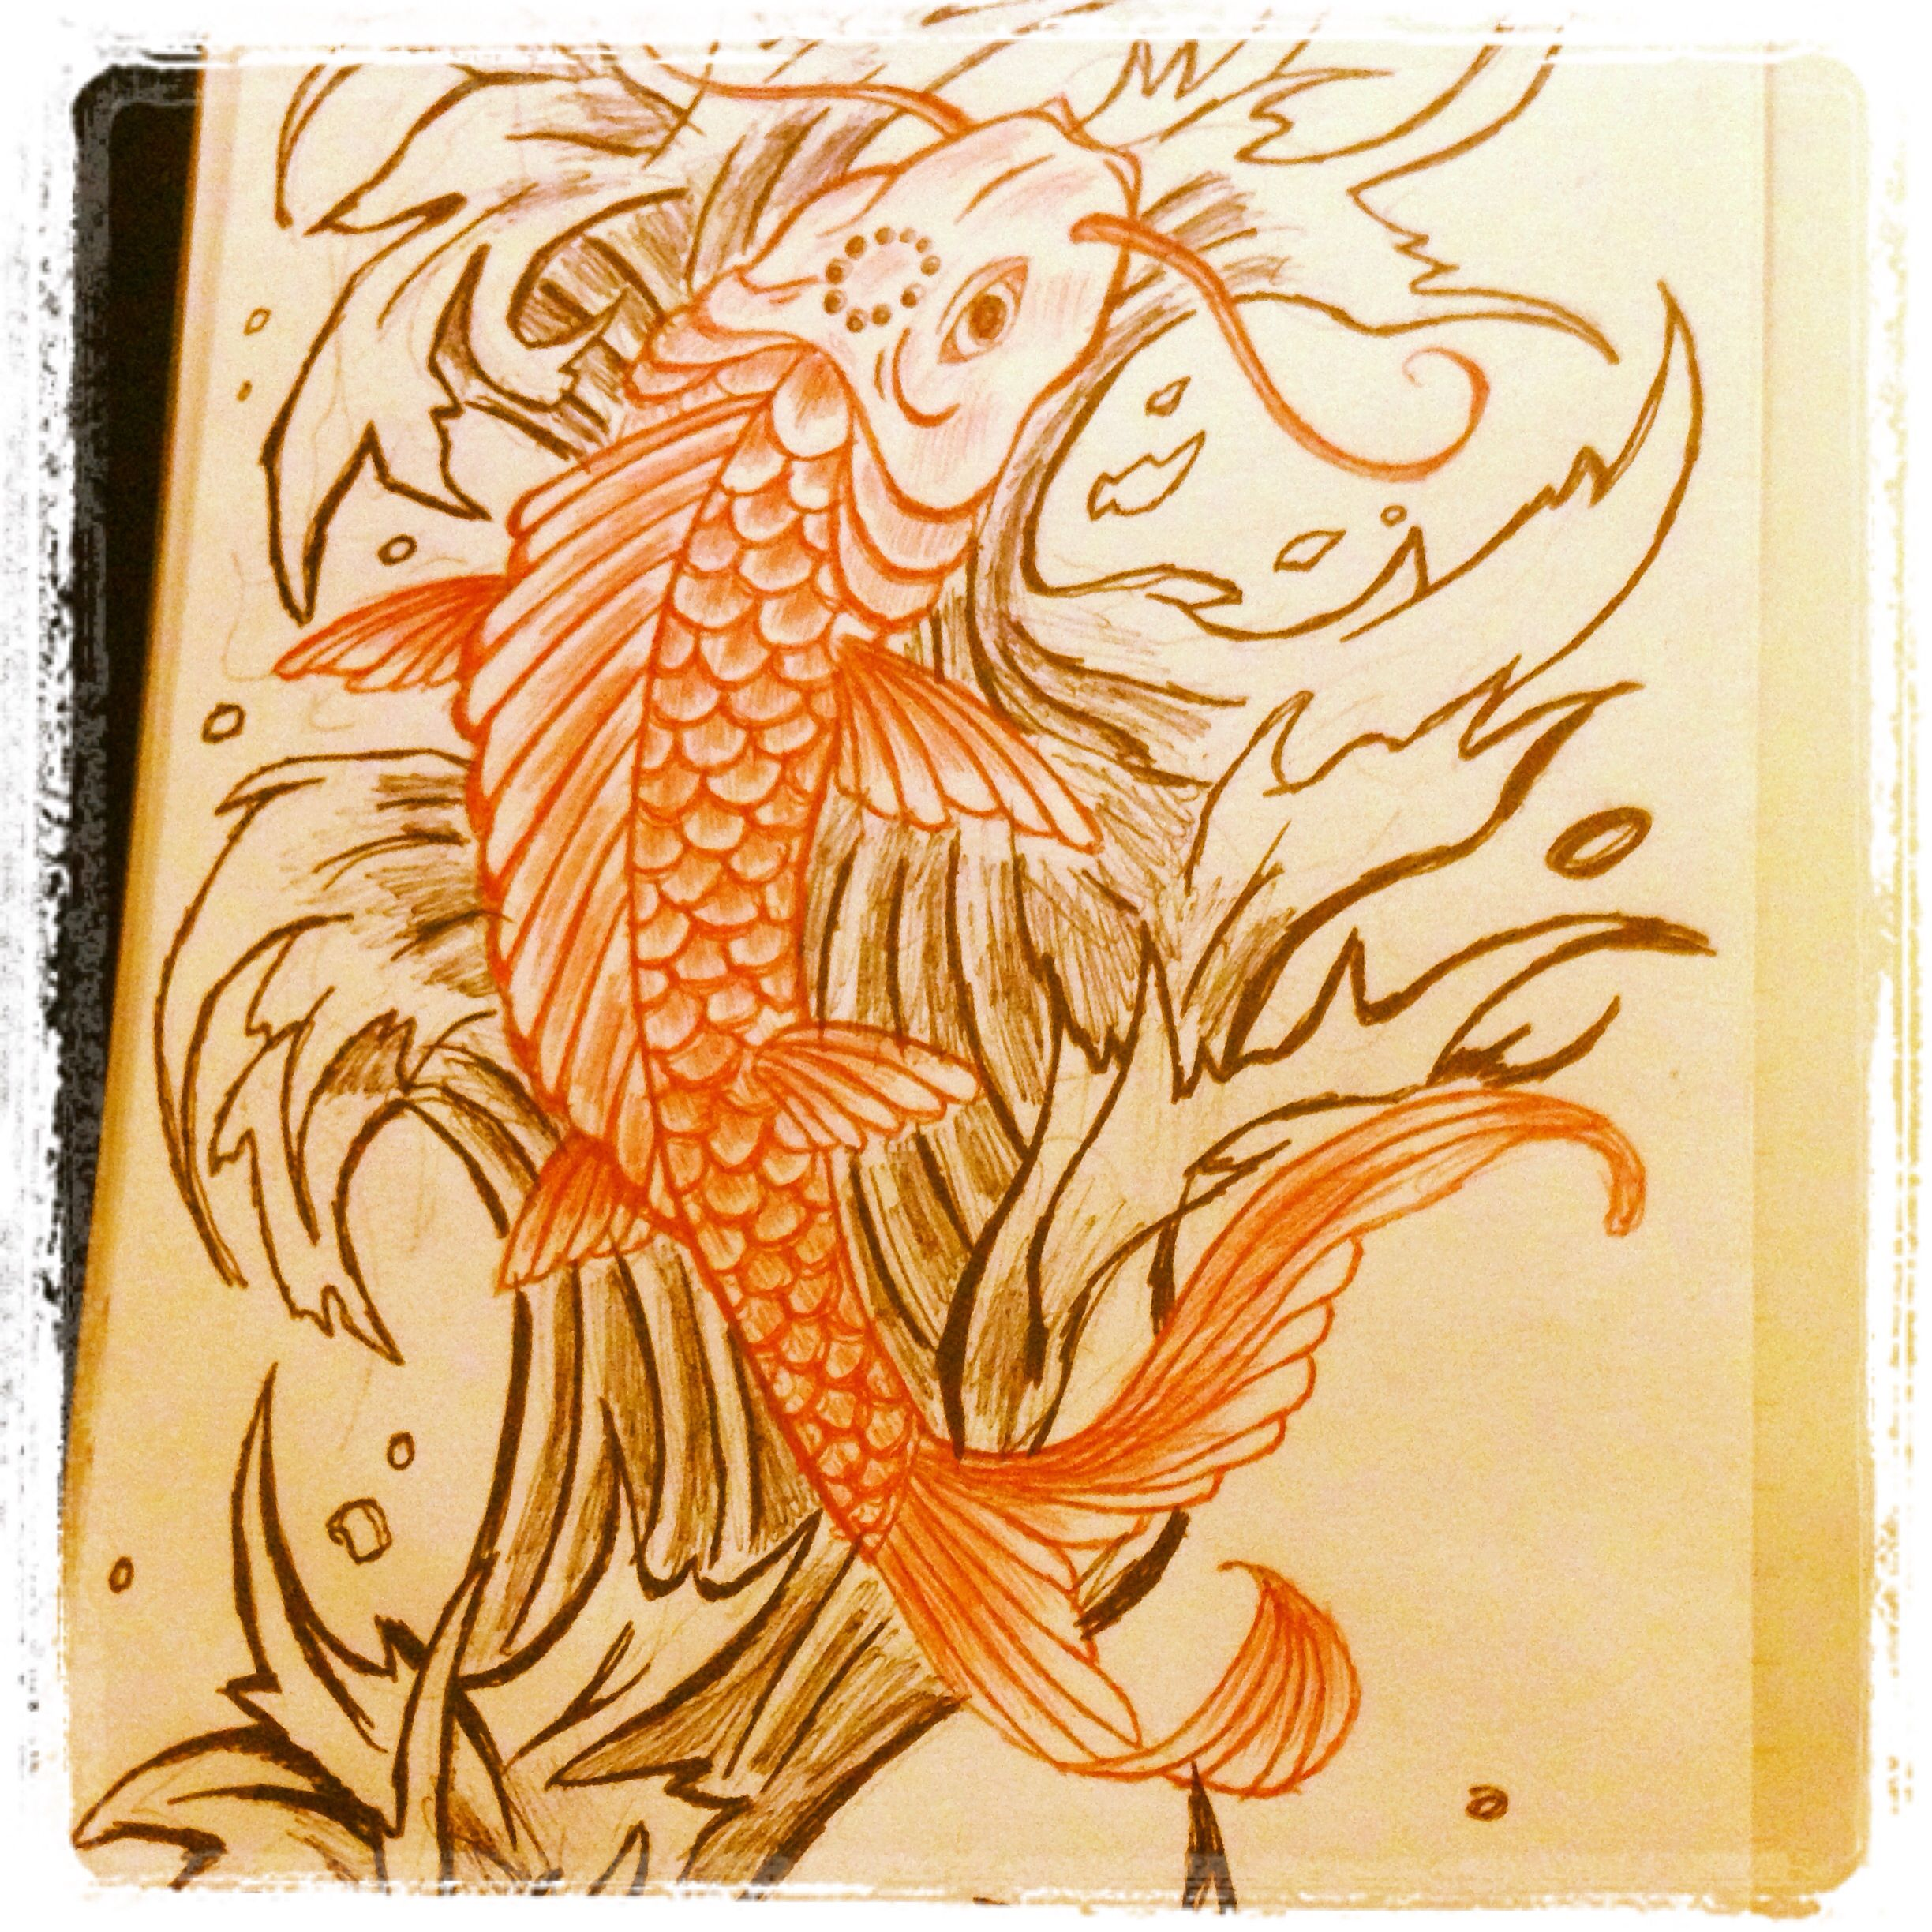 Practice Drawing Waves And Koi Fish